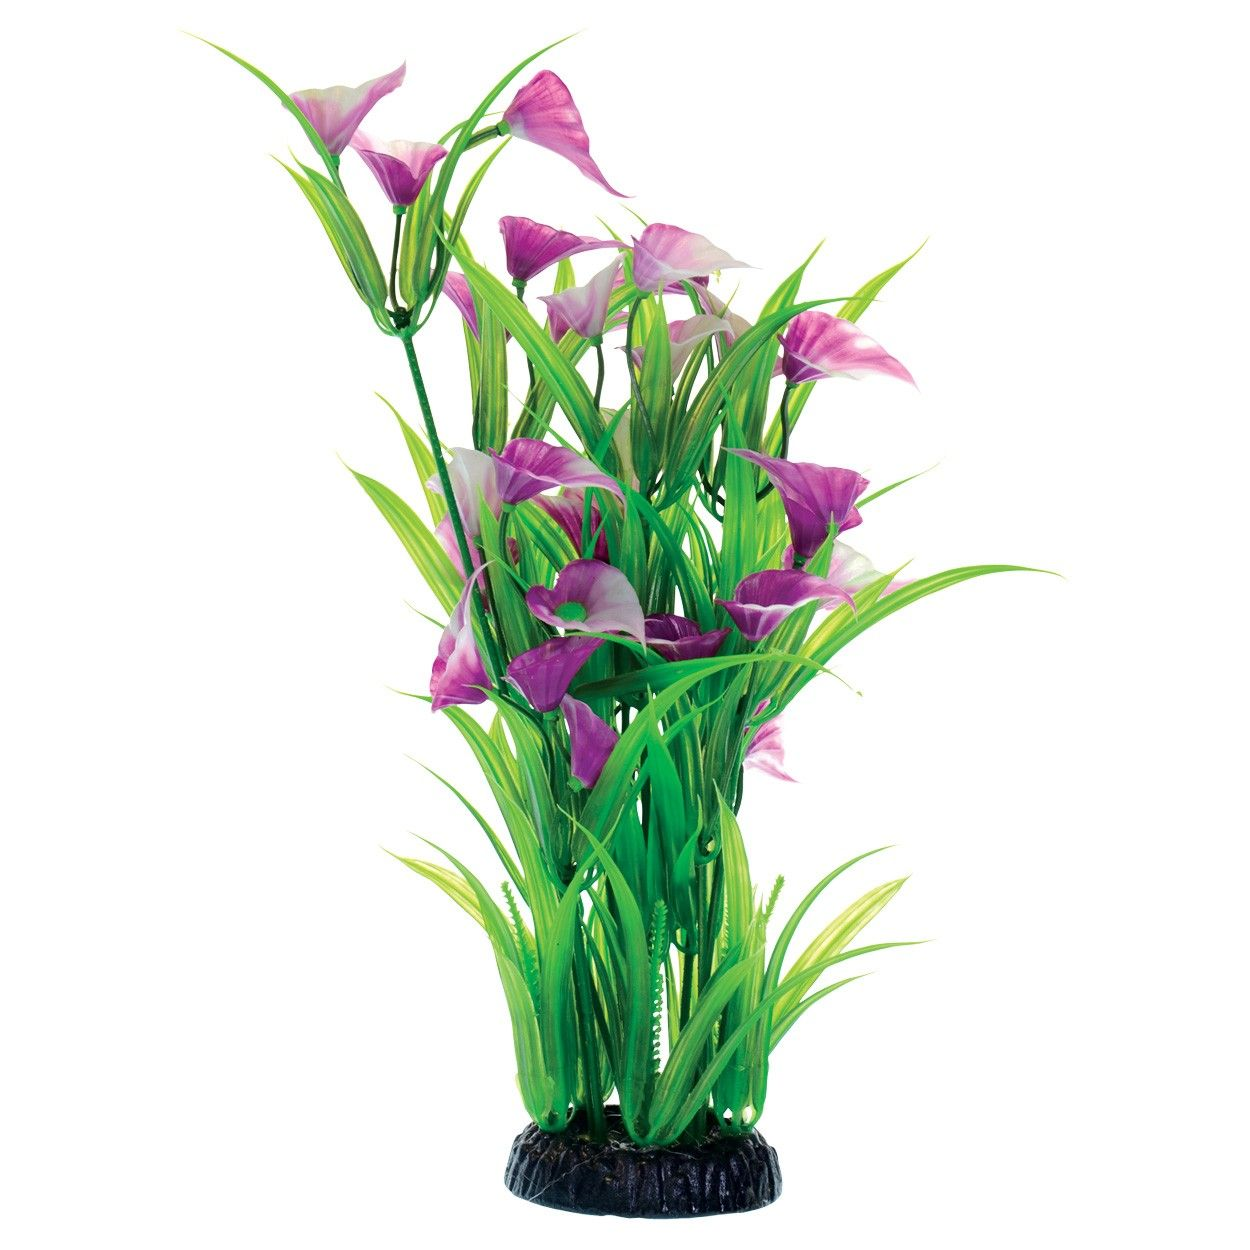 Underwater Treasures Purple Calla Lily - 12 inch